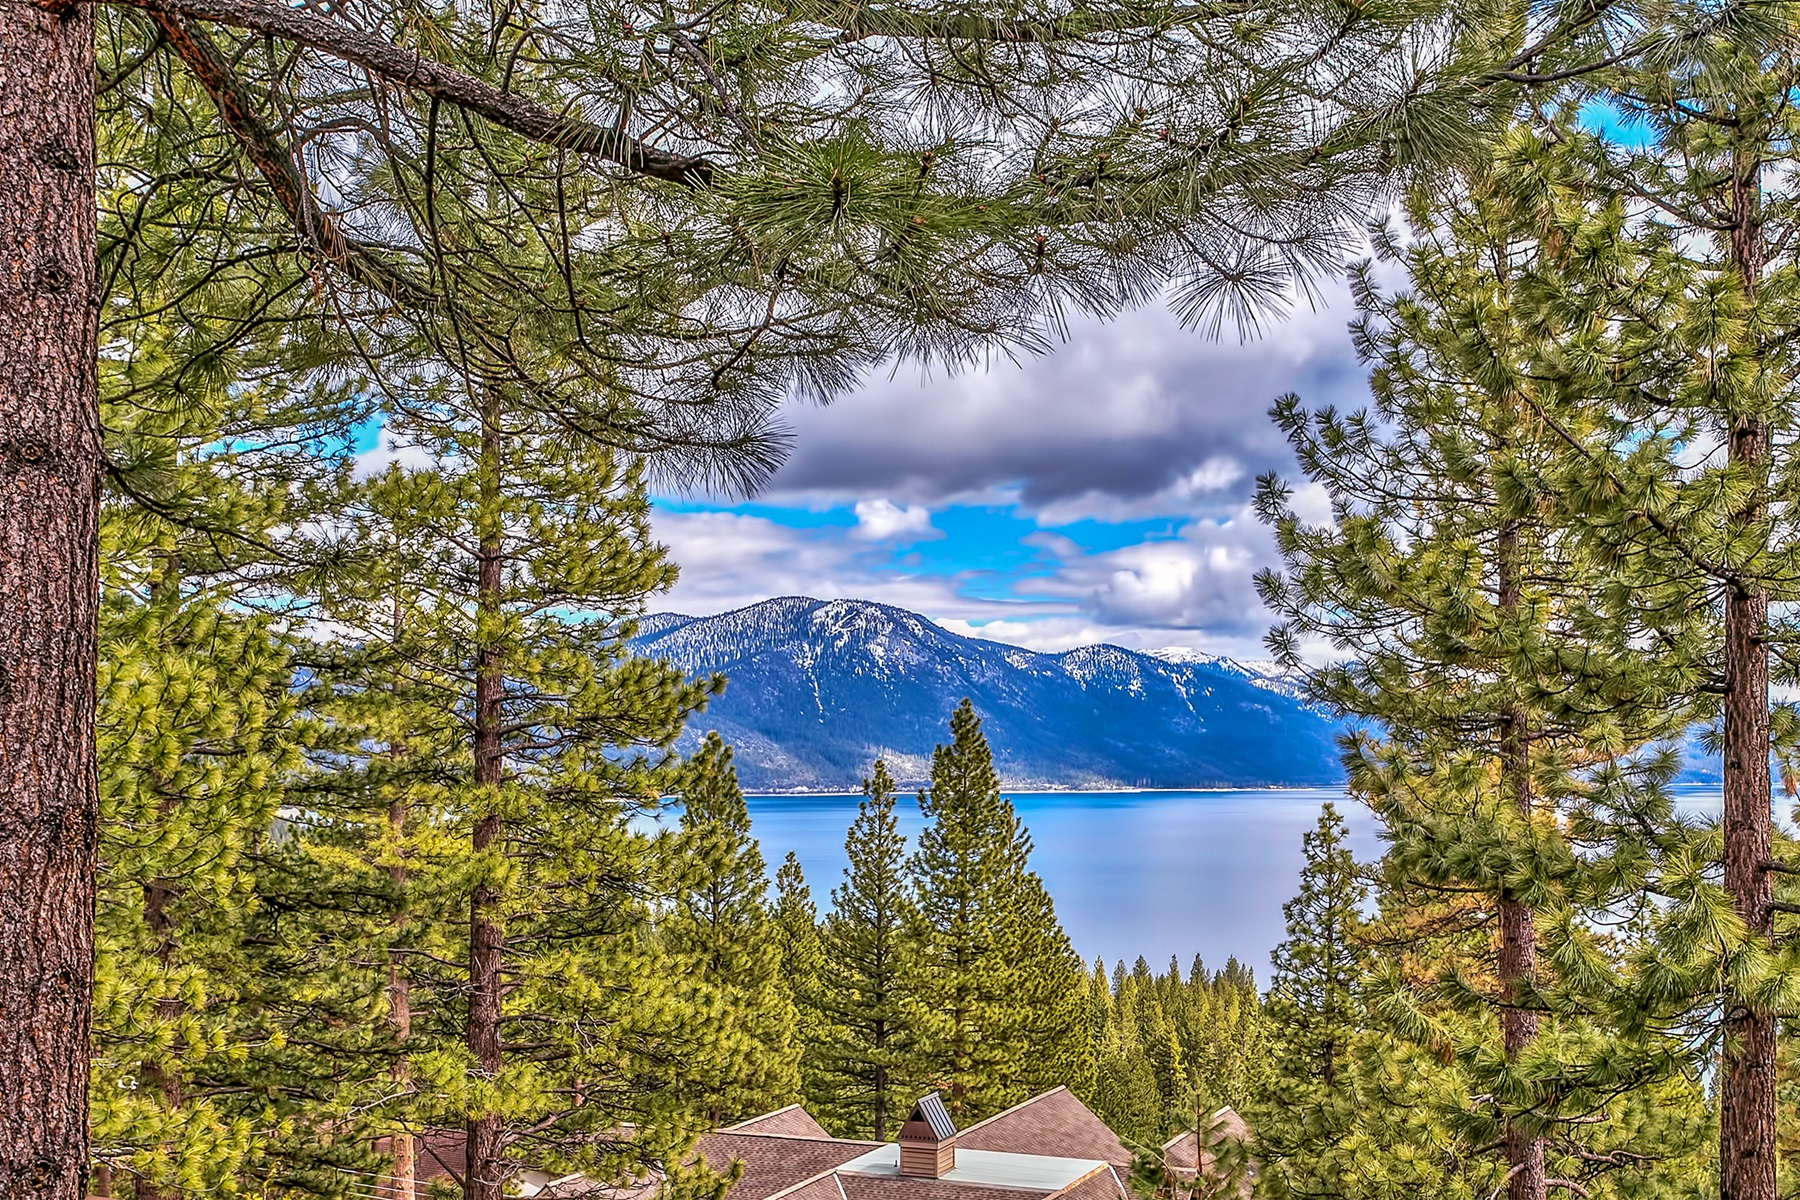 Single Family Home for Sale at 543 Knotty Pine 543 Knotty Pine Drive Incline Village, Nevada, 89451 Lake Tahoe, United States